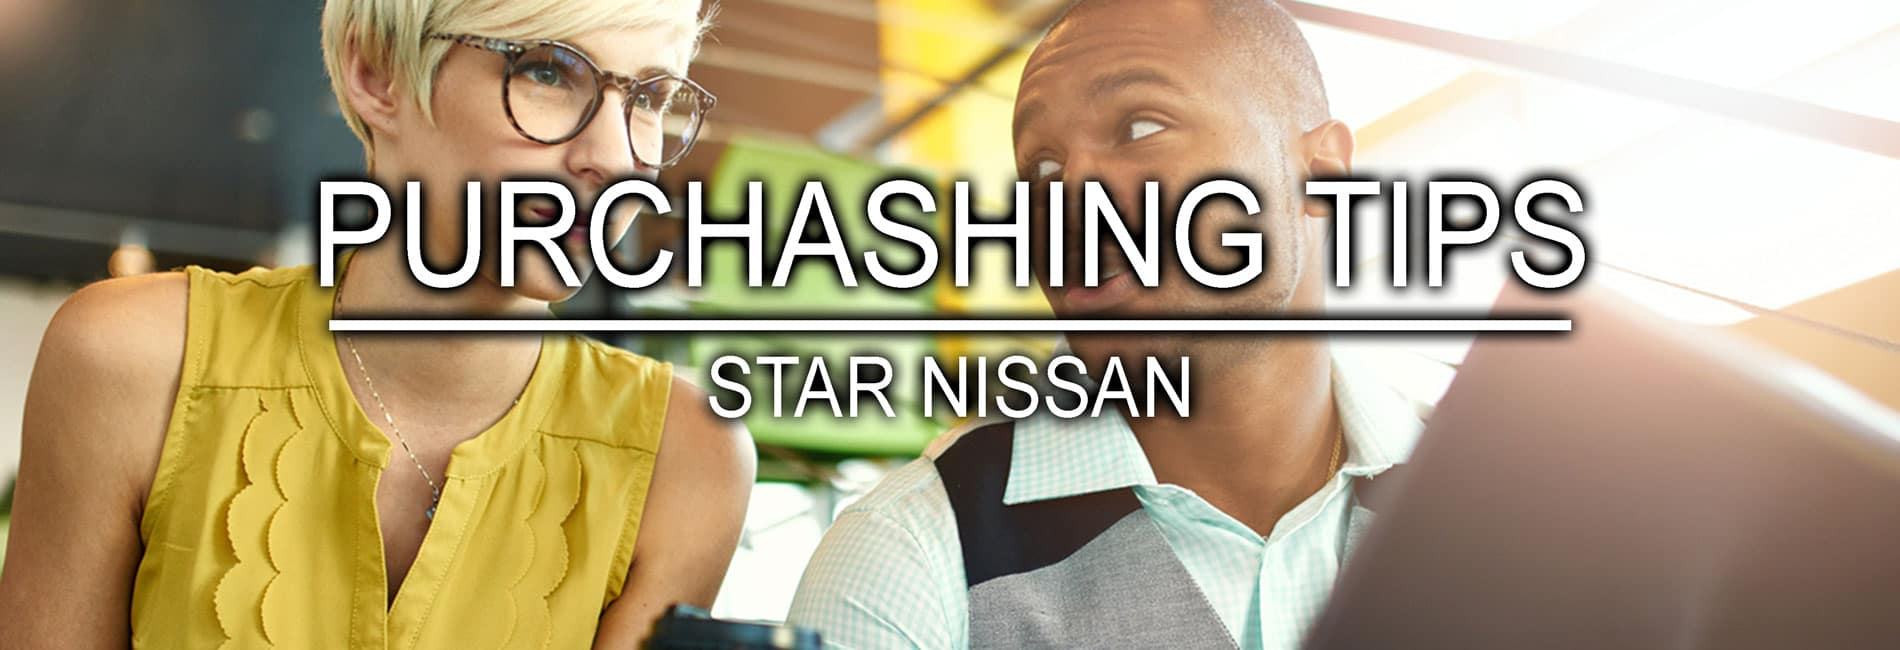 Vehicle Purchasing Tips from Star Nissan